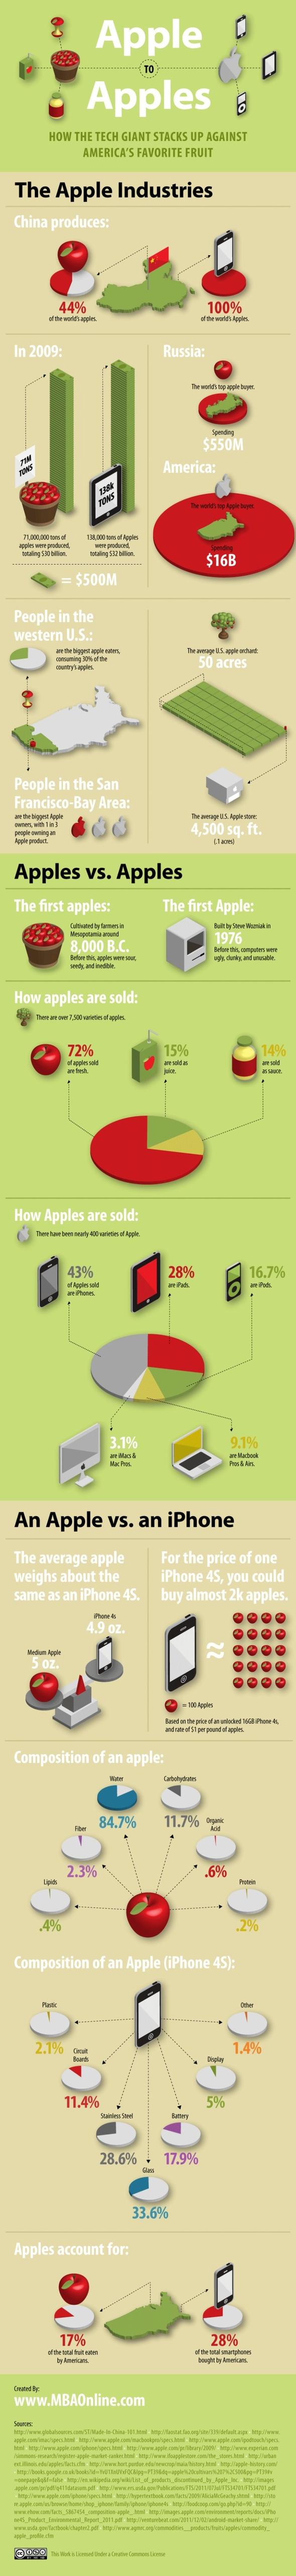 Apples to Apple: more similar than you might think